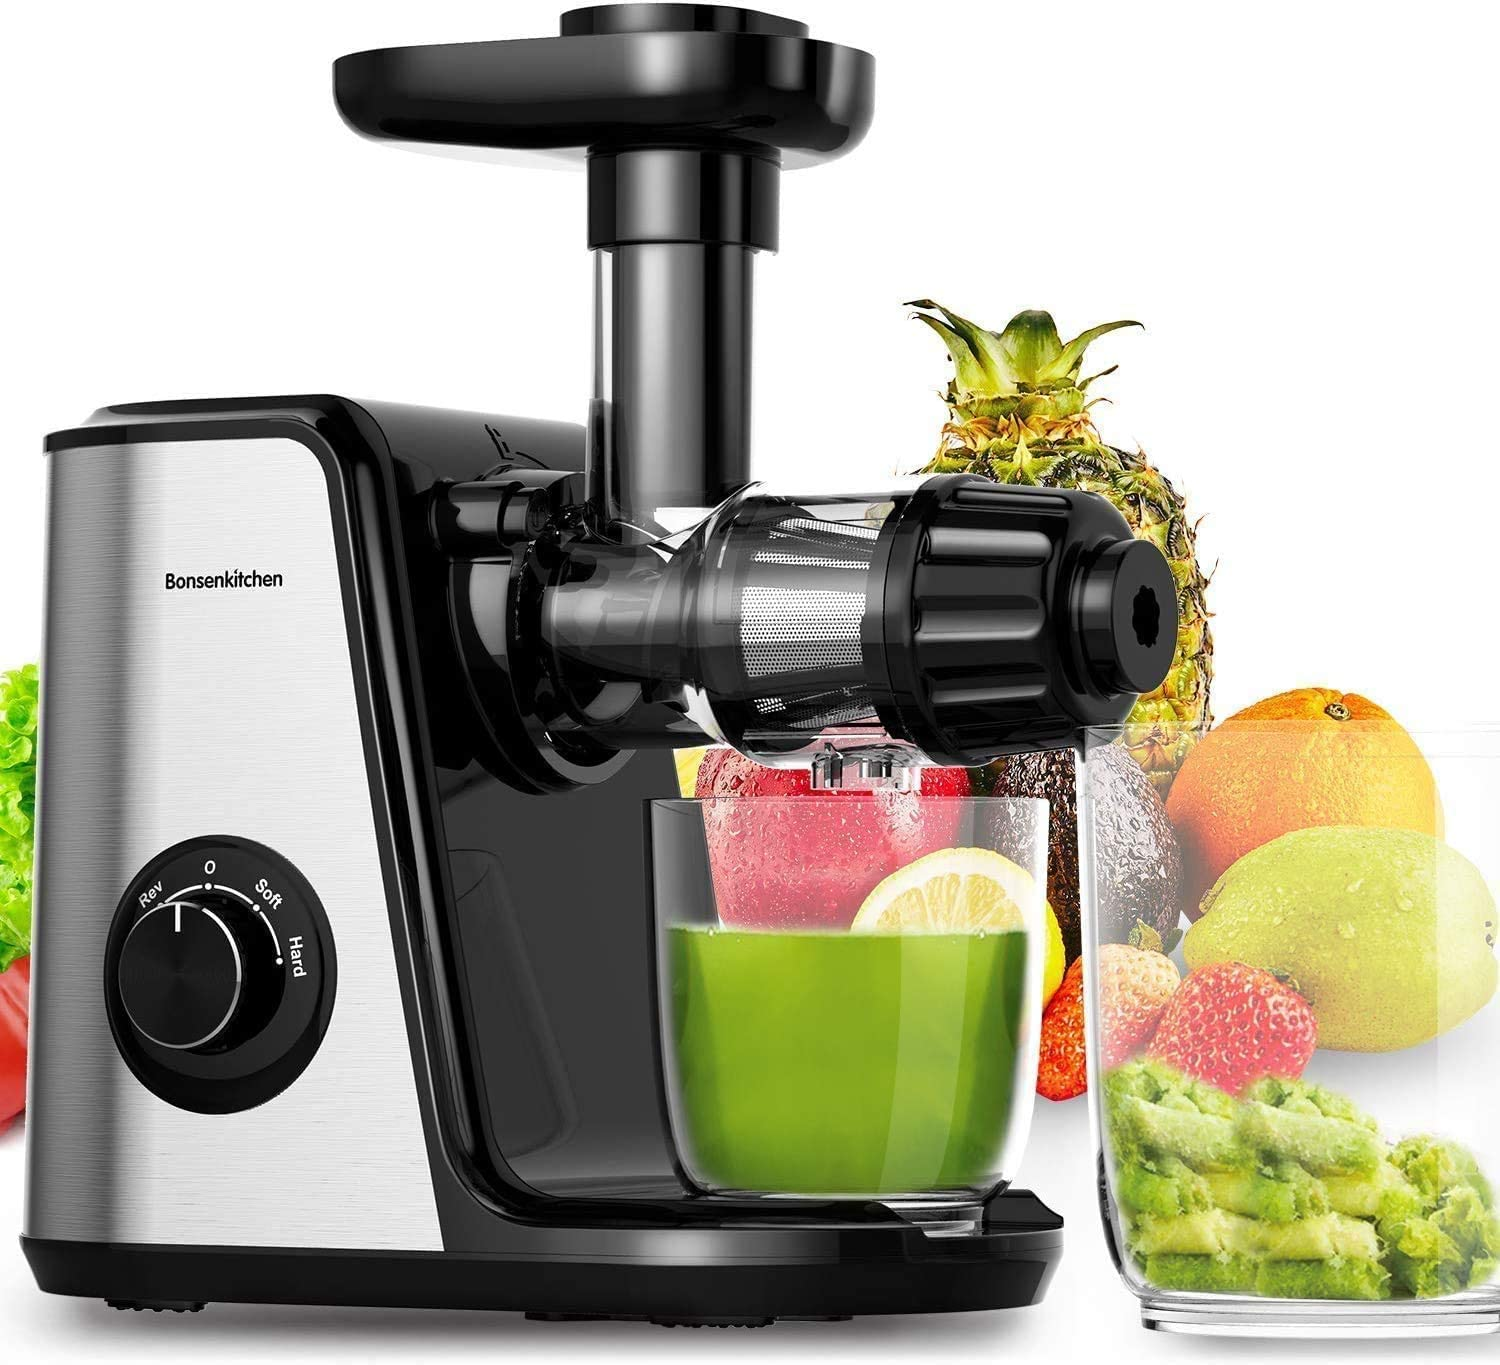 Masticating Juicer Machines, Bonsenkitchen Cold Press Juicer for Fruit & Vegetable, Easy to Clean, BPA Free, Quiet Motor & Reverse Function, High Nutrition Reserve, Juice Extractor for Celery, Kale, Carrot